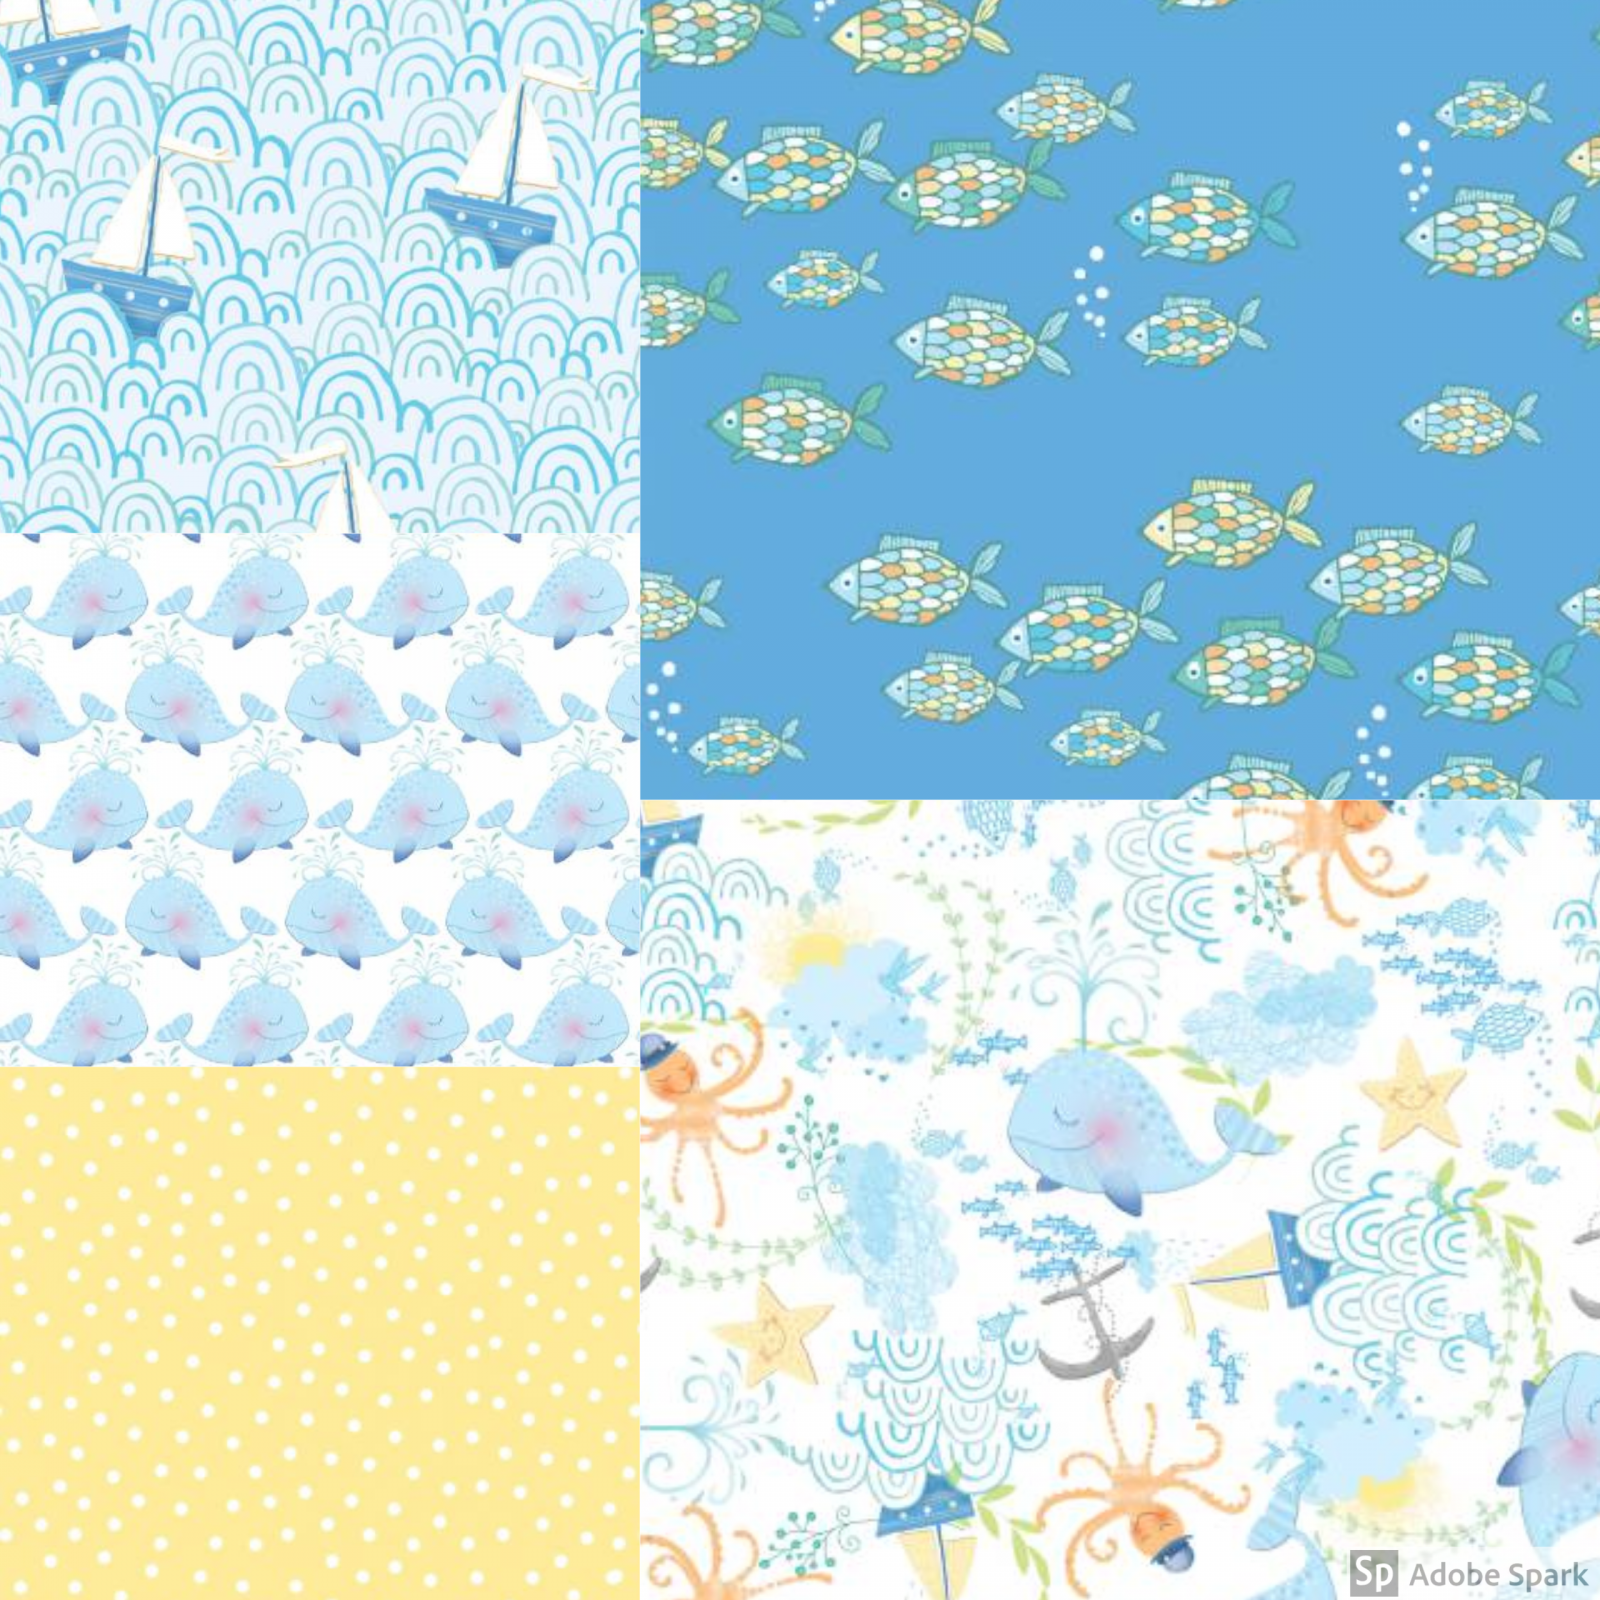 Itty Bittys - Baby Boy Fat Quarter Bundle - by 3 Wishes Fabric - Includes 5 Fat Quarters